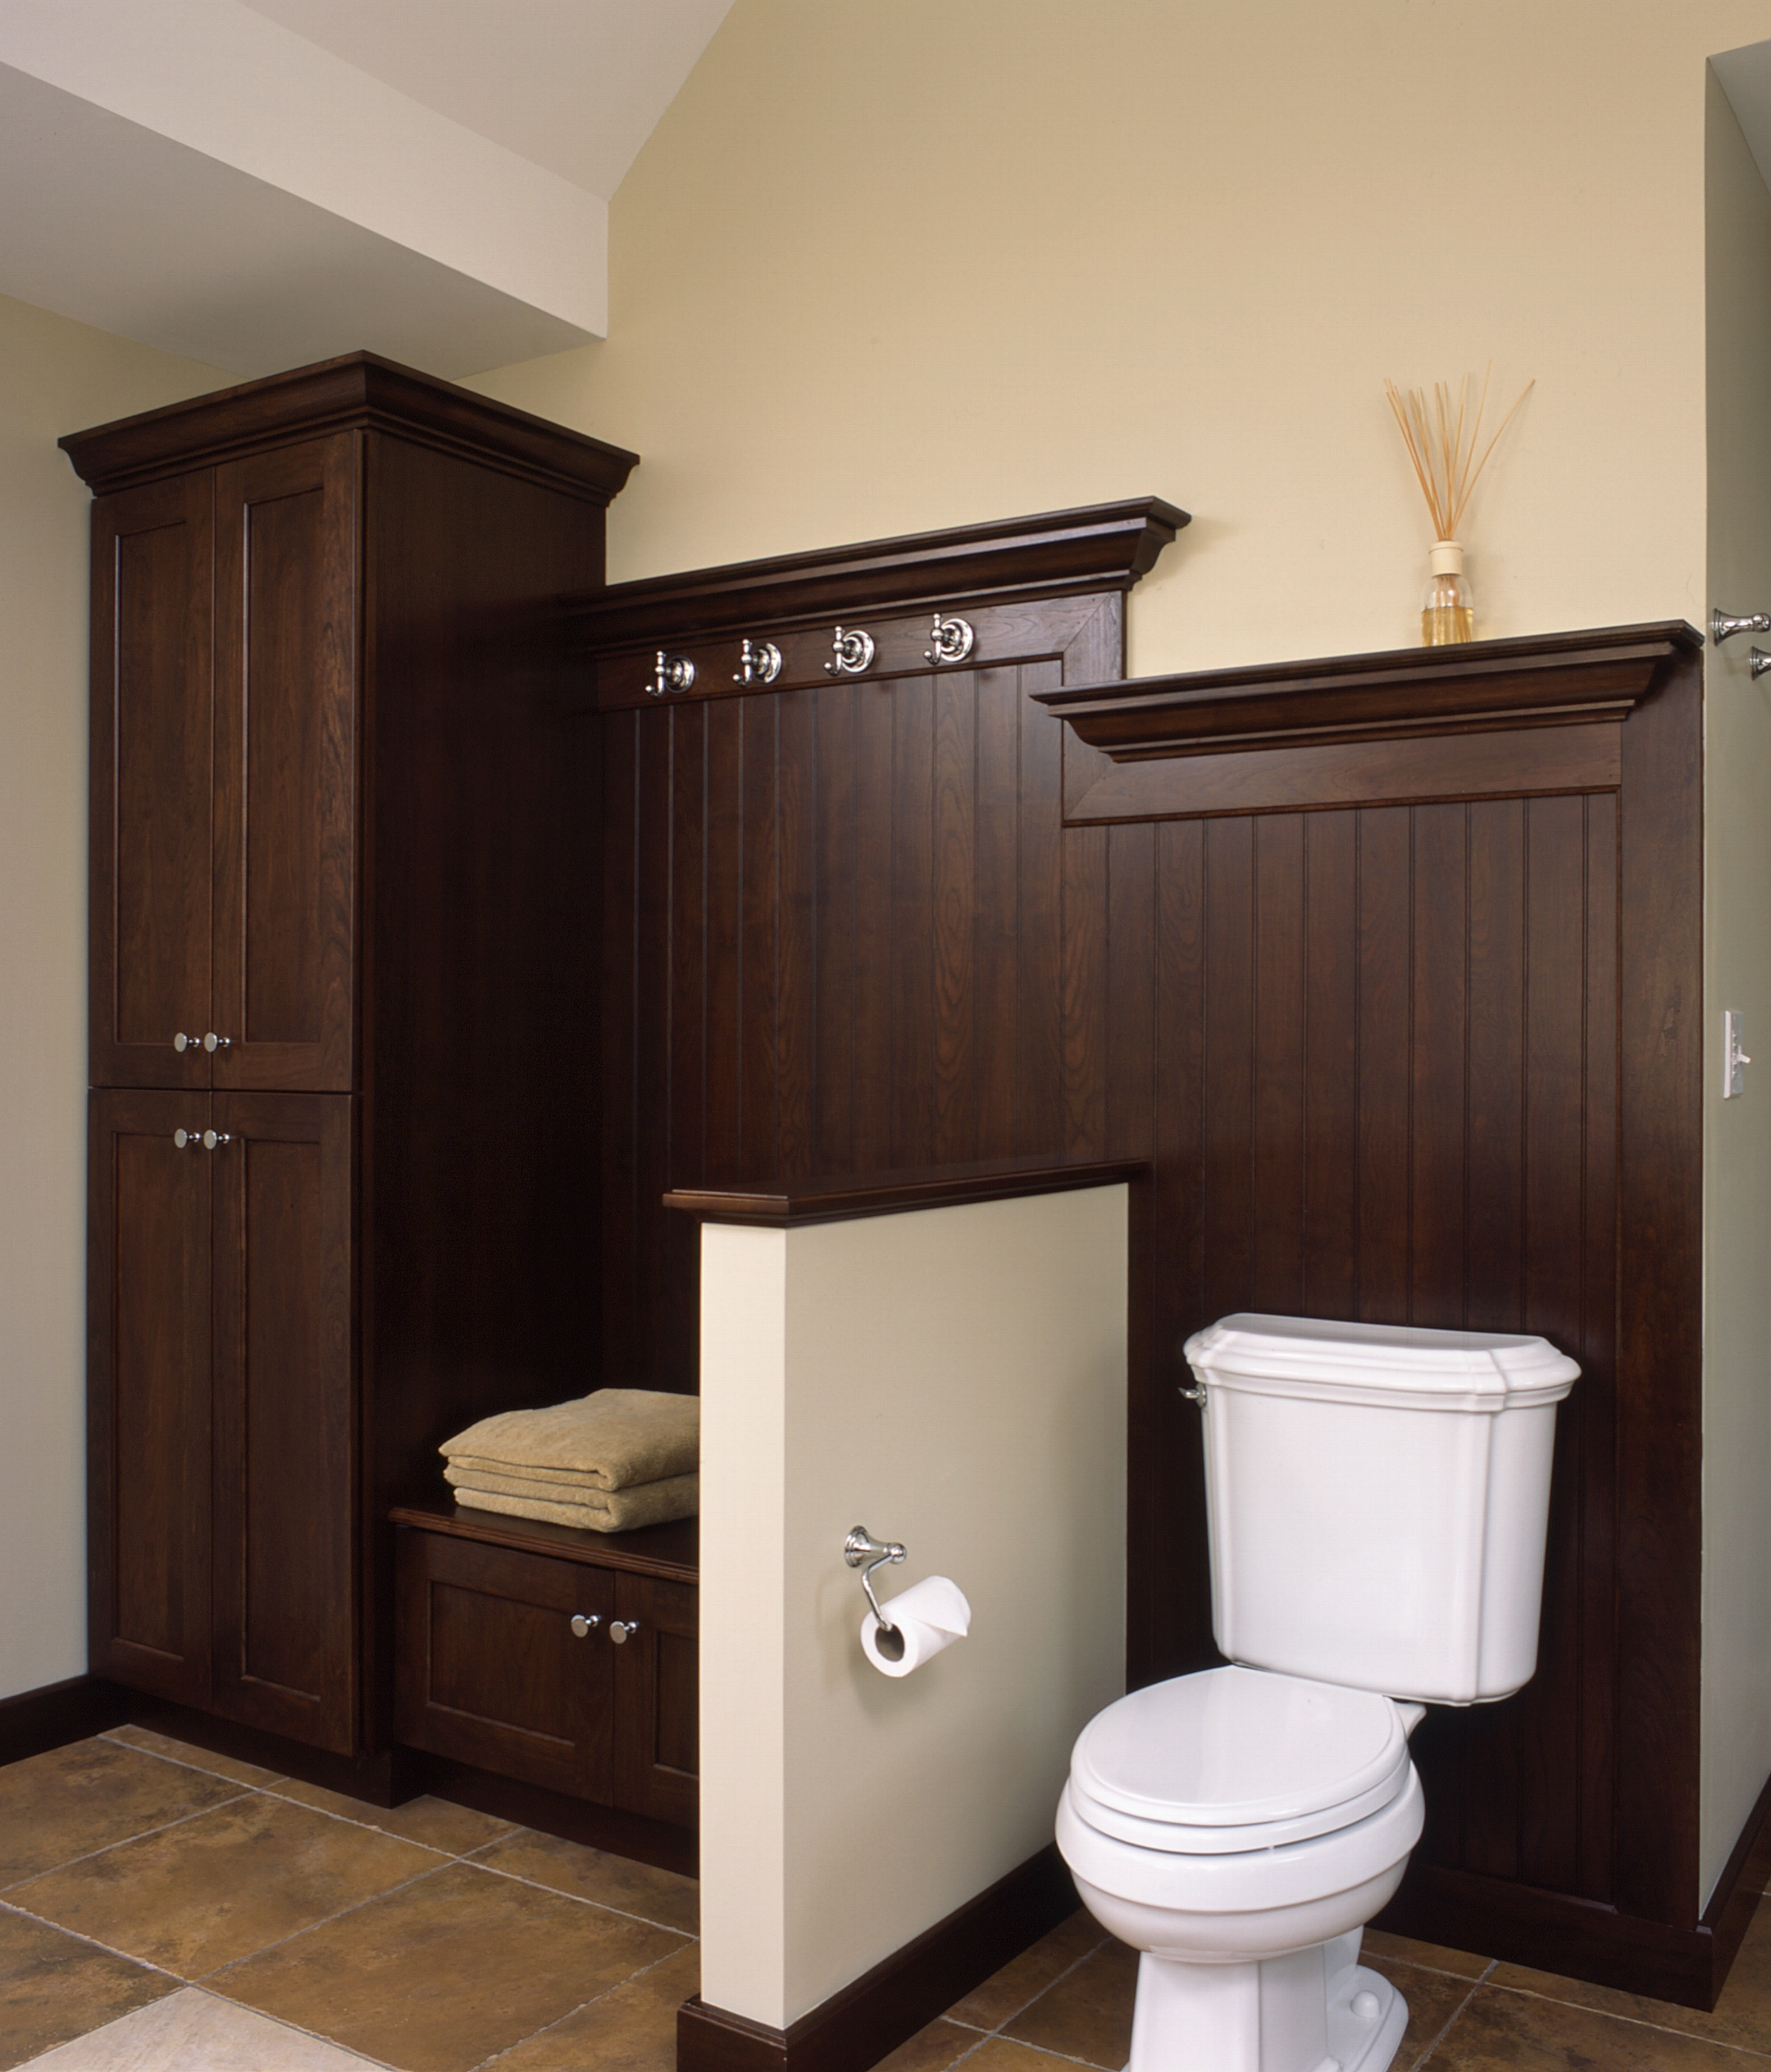 Home Bathroom Remodeling Contractor In Fairfield County, CT